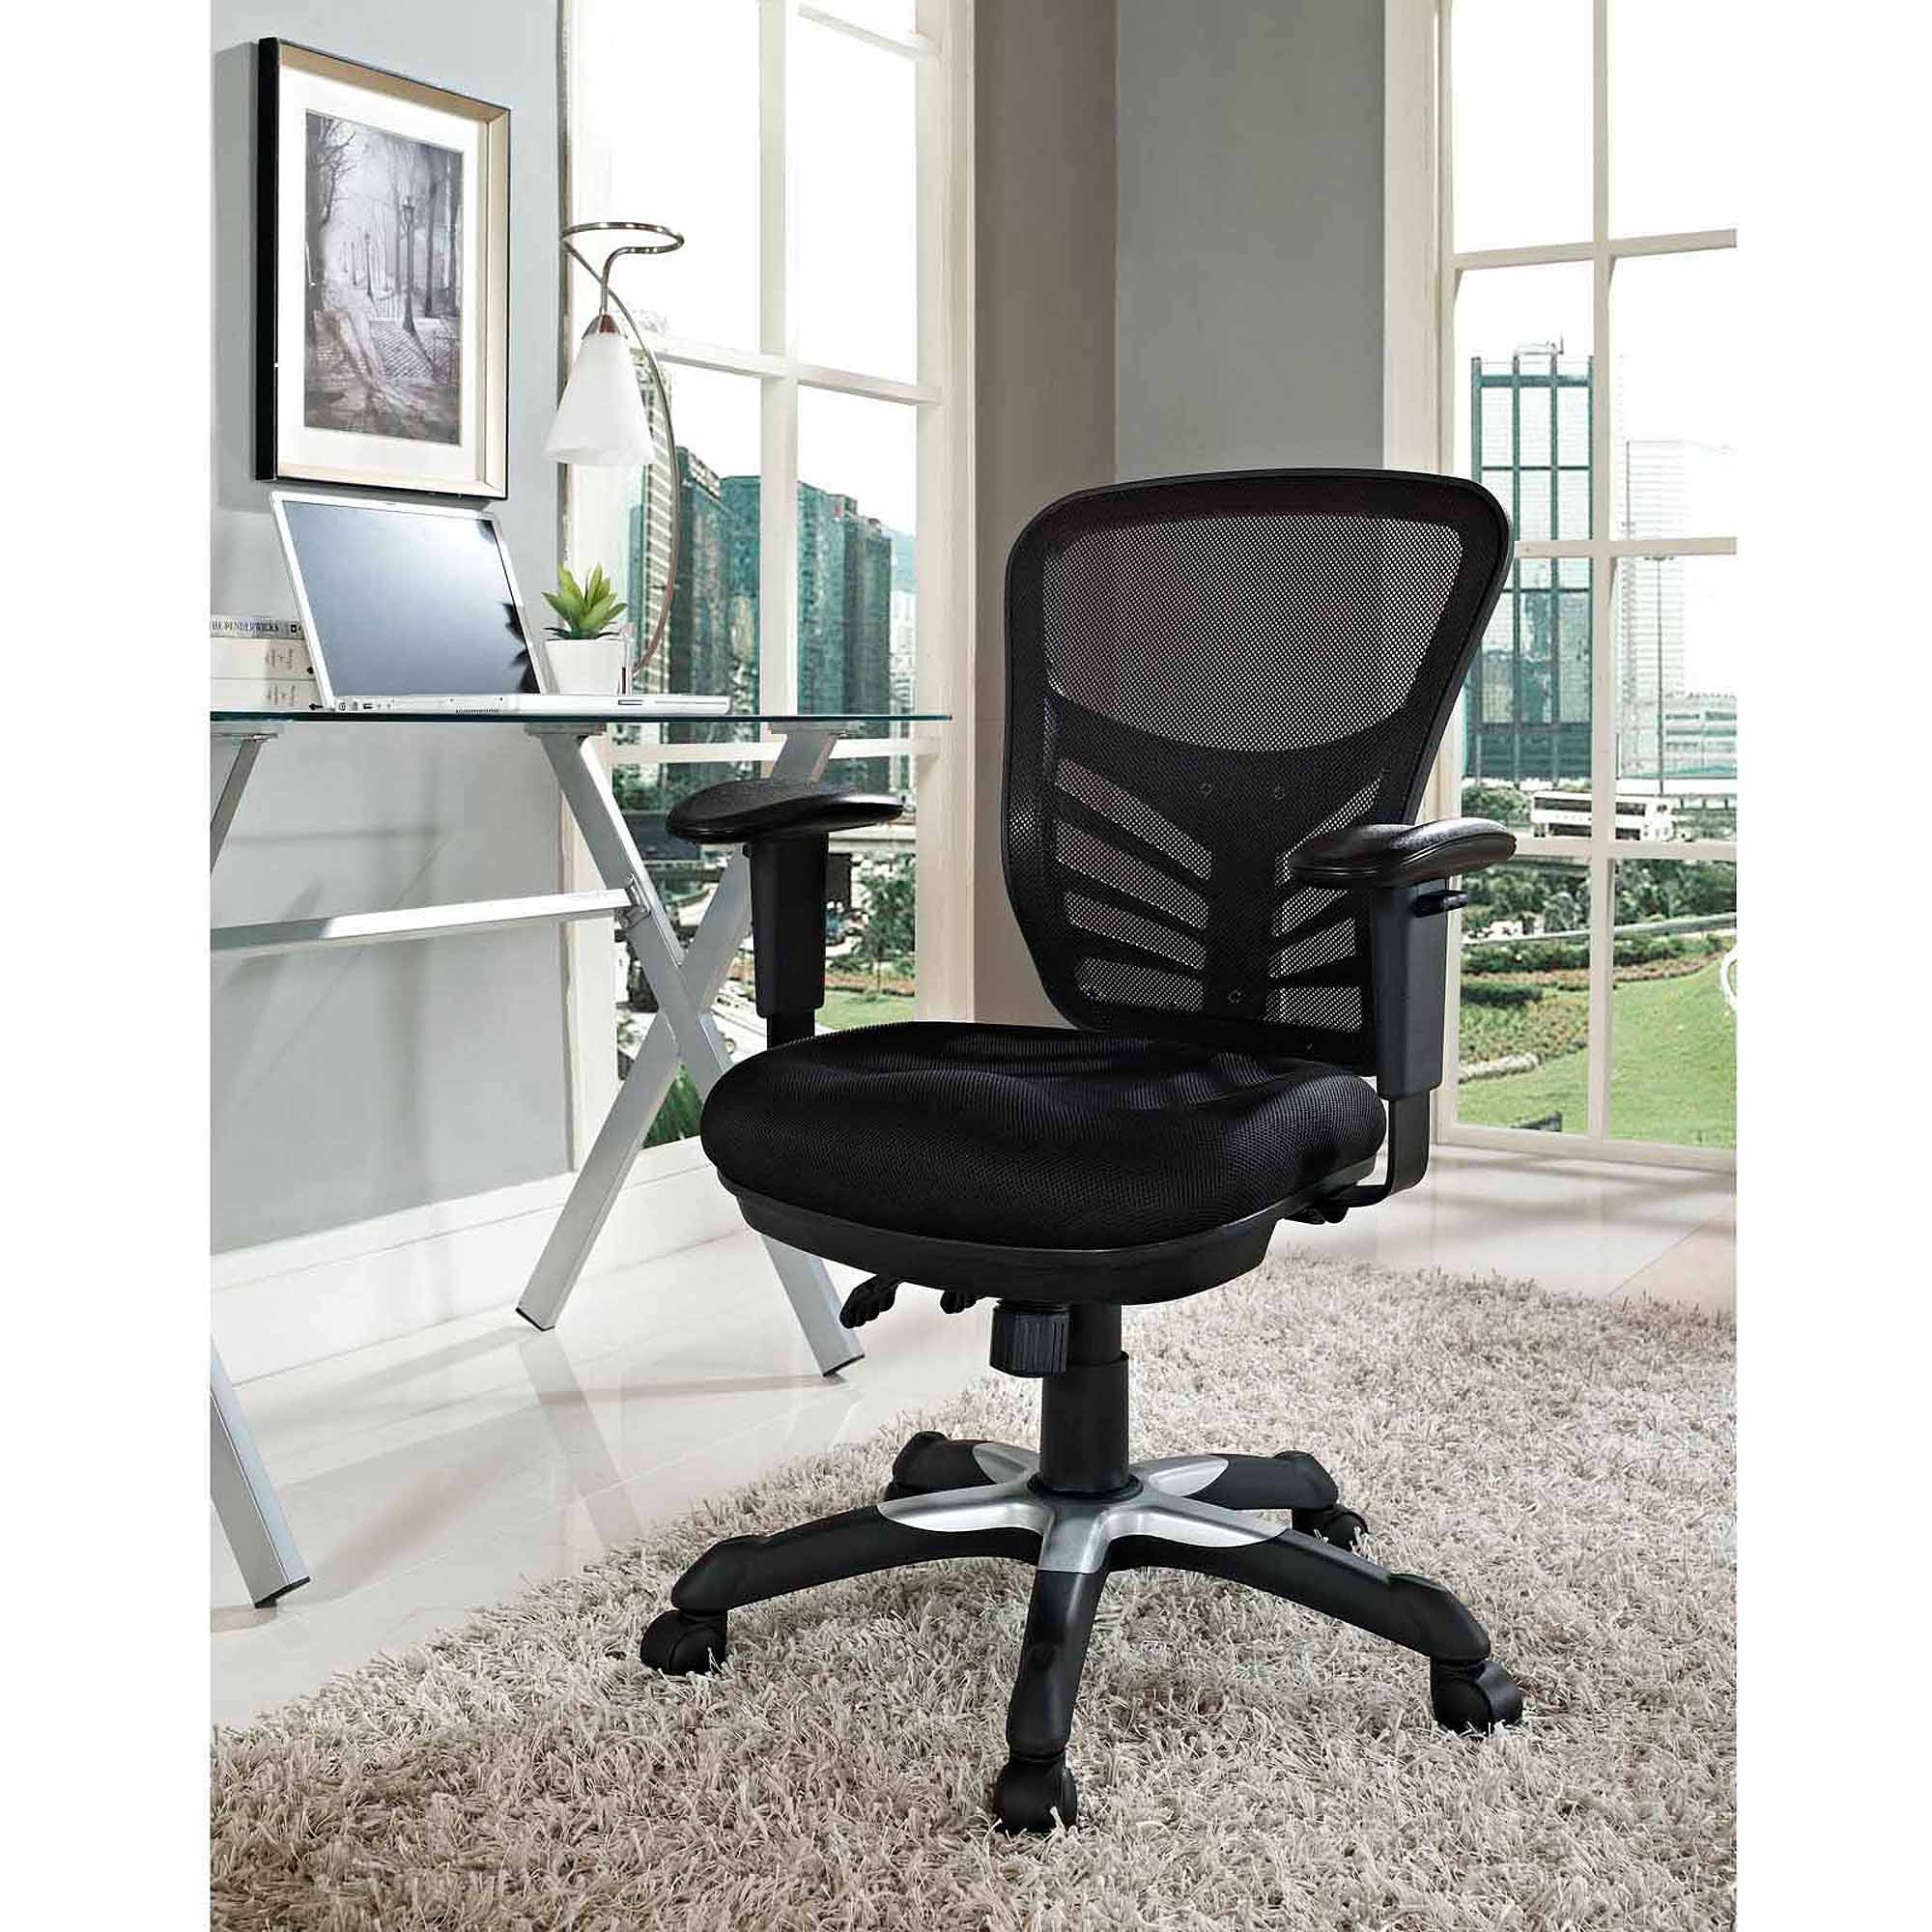 co design office chairs old wooden chair modway articulate mesh back and seat multiple colors walmart com